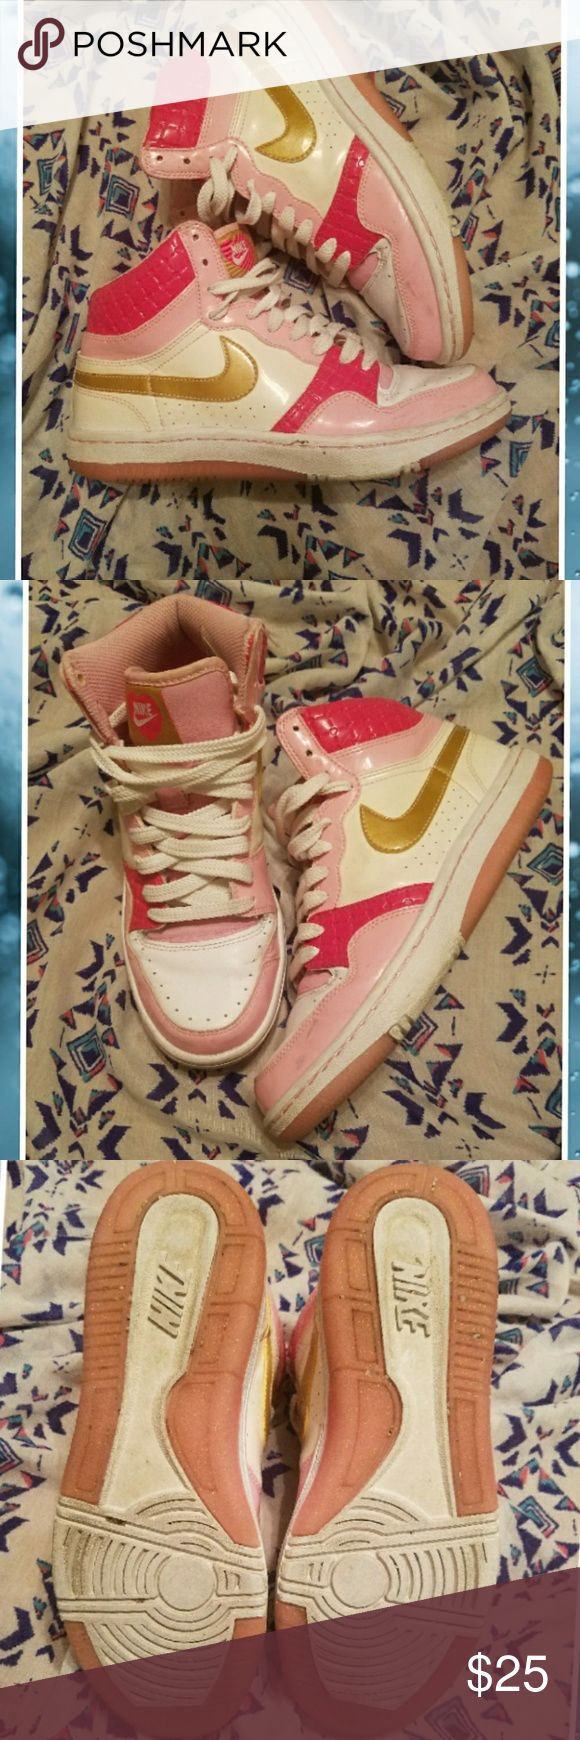 Nike hi tops pink white gold 8 Nike hi tops in good overall shape. Shows some signs of wear. Nike Shoes Athletic Shoes